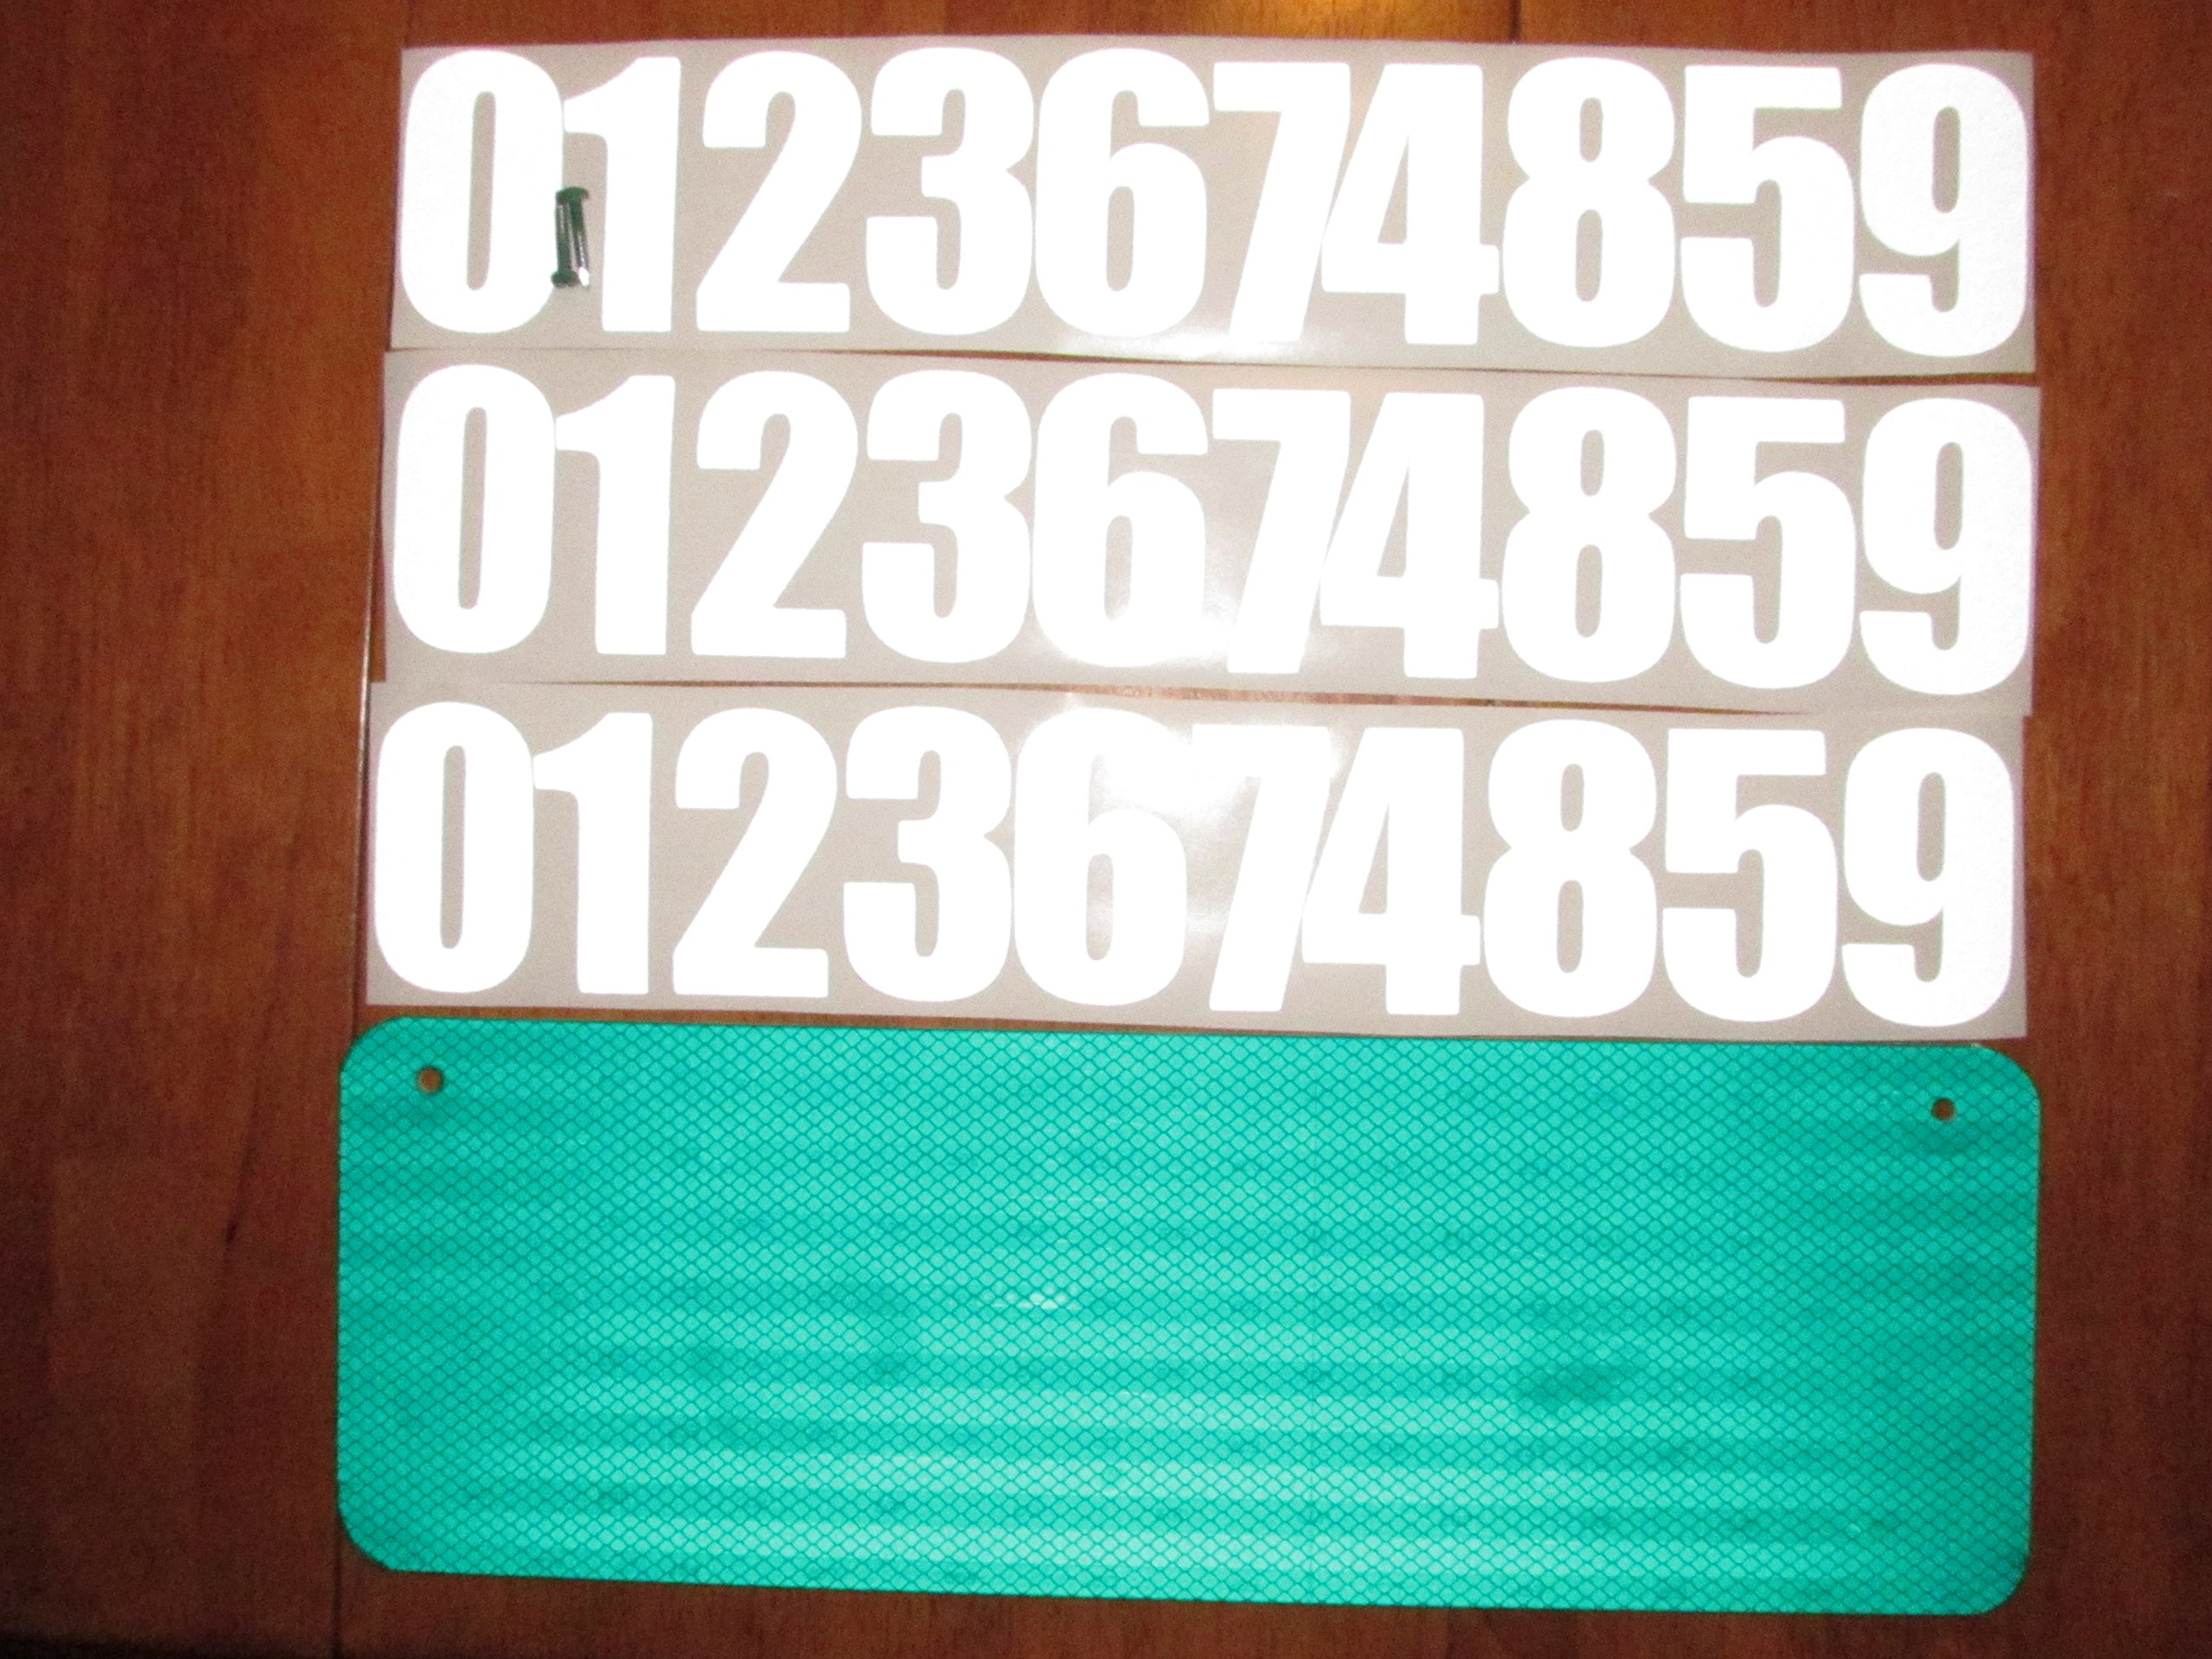 DIY Premium 911 Green 3M Prismatic Reflective Address Sign Kit. W/ 3 Inch Numbers and Reflective Plate for Home or Business By Mg2 Signs